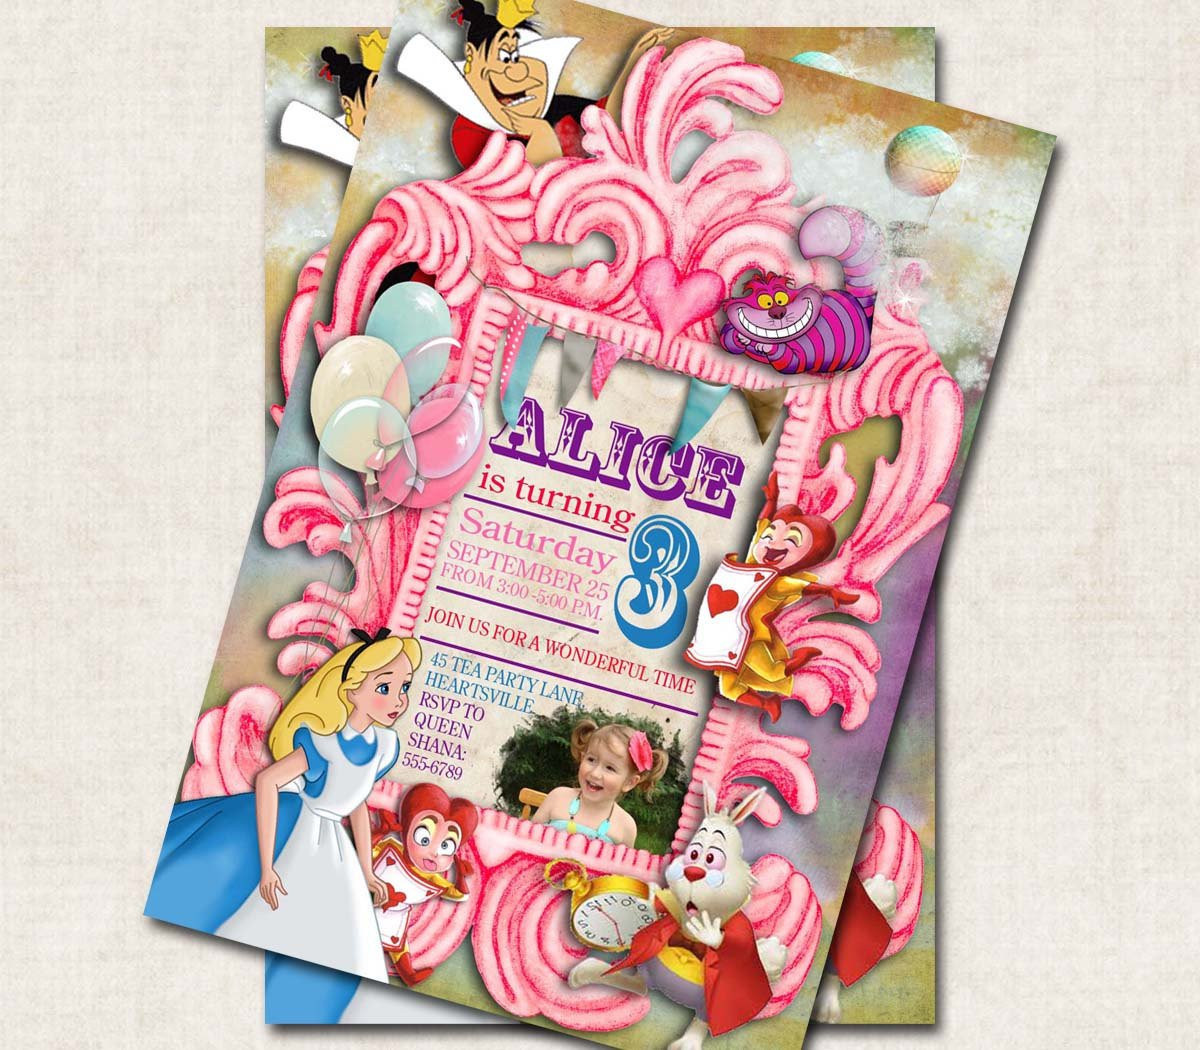 Best ideas about Alice In Wonderland Birthday Invitations . Save or Pin Alice in Wonderland Birthday Party by missbellaexpressions Now.